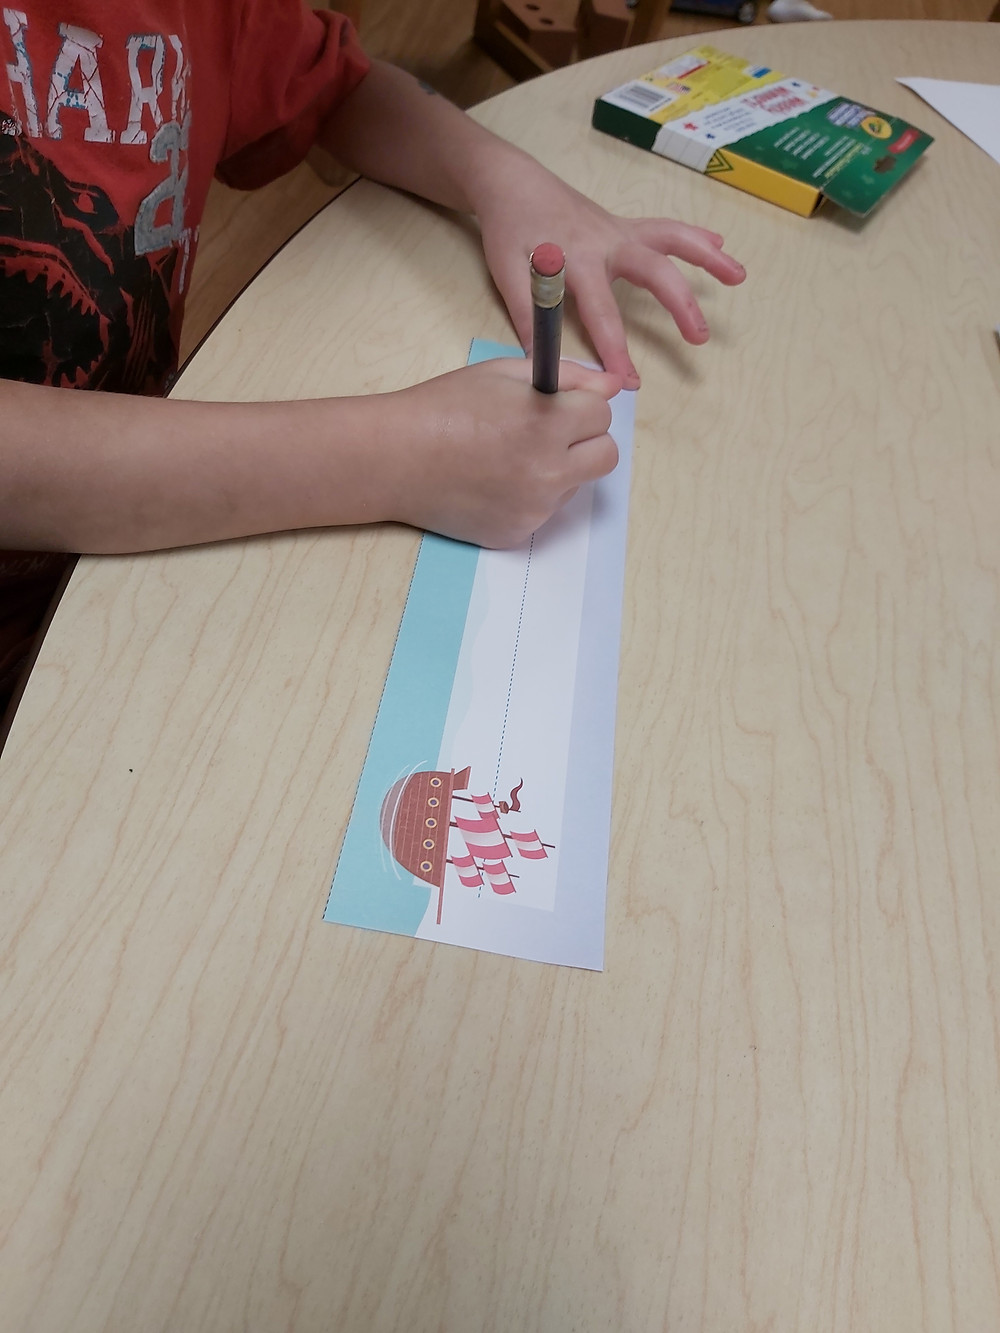 preschooler writing name on name tag